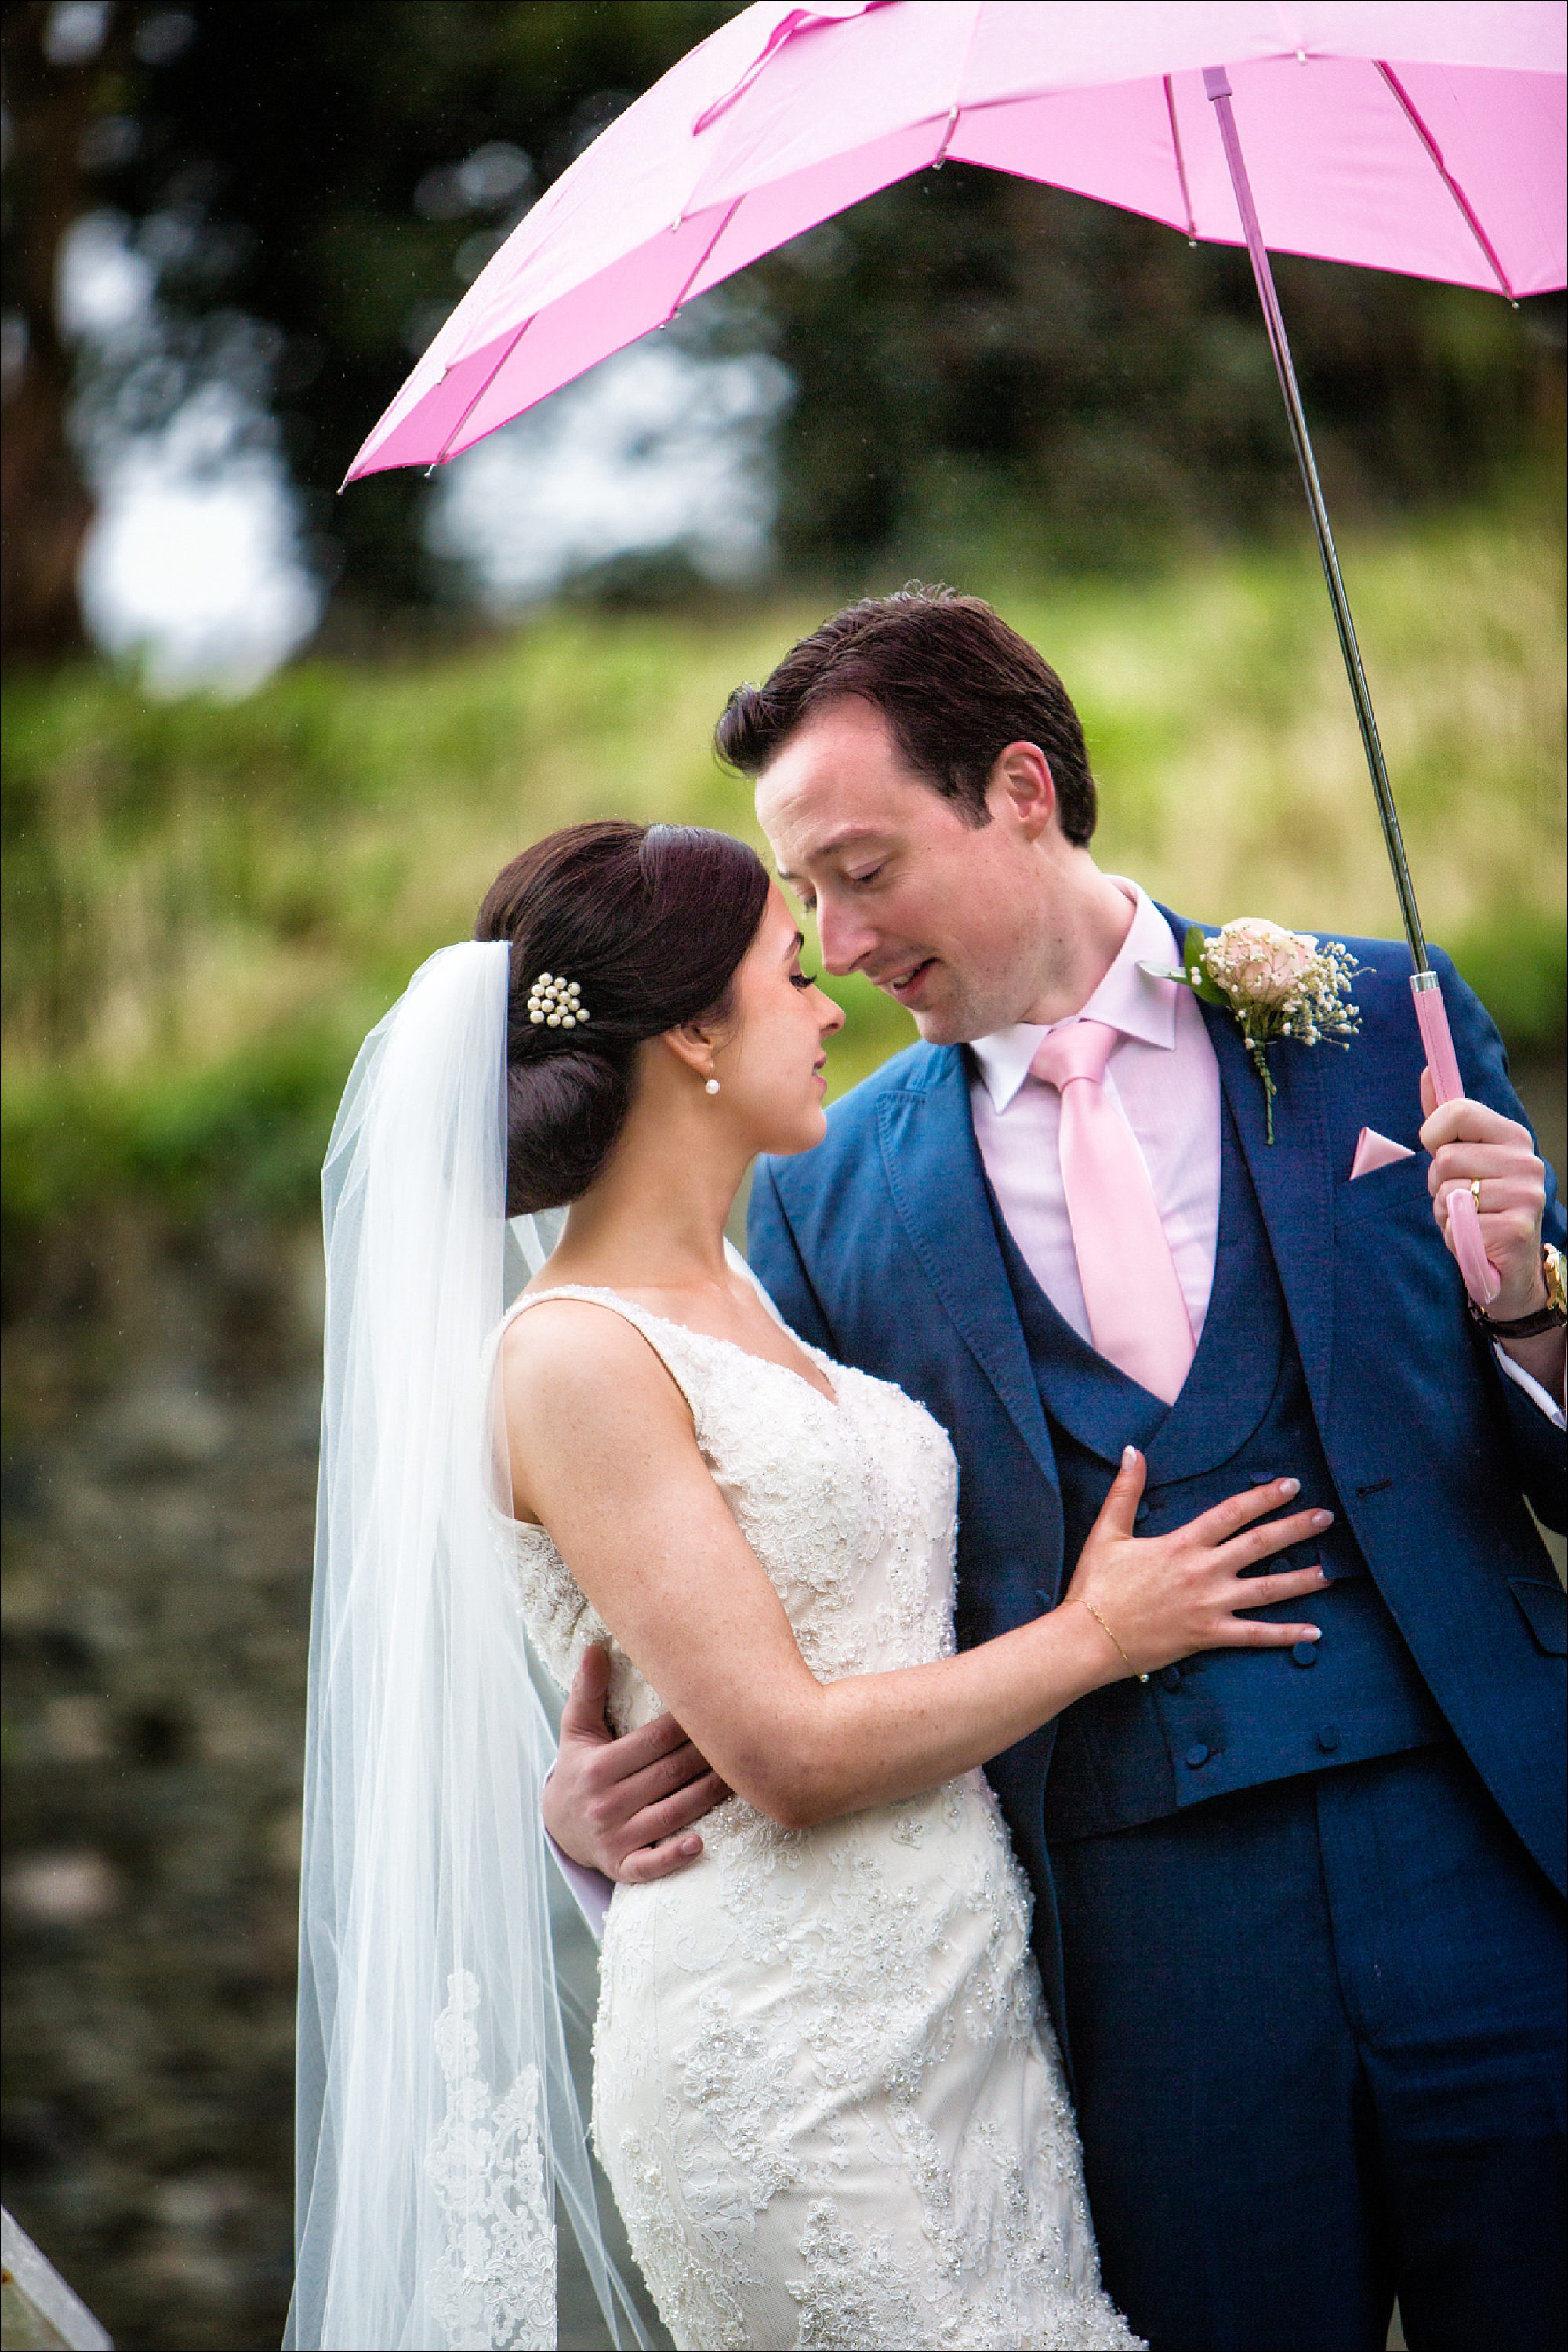 dublin wedding photographer david duignan photography bellingham castle weddings Ireland 0060